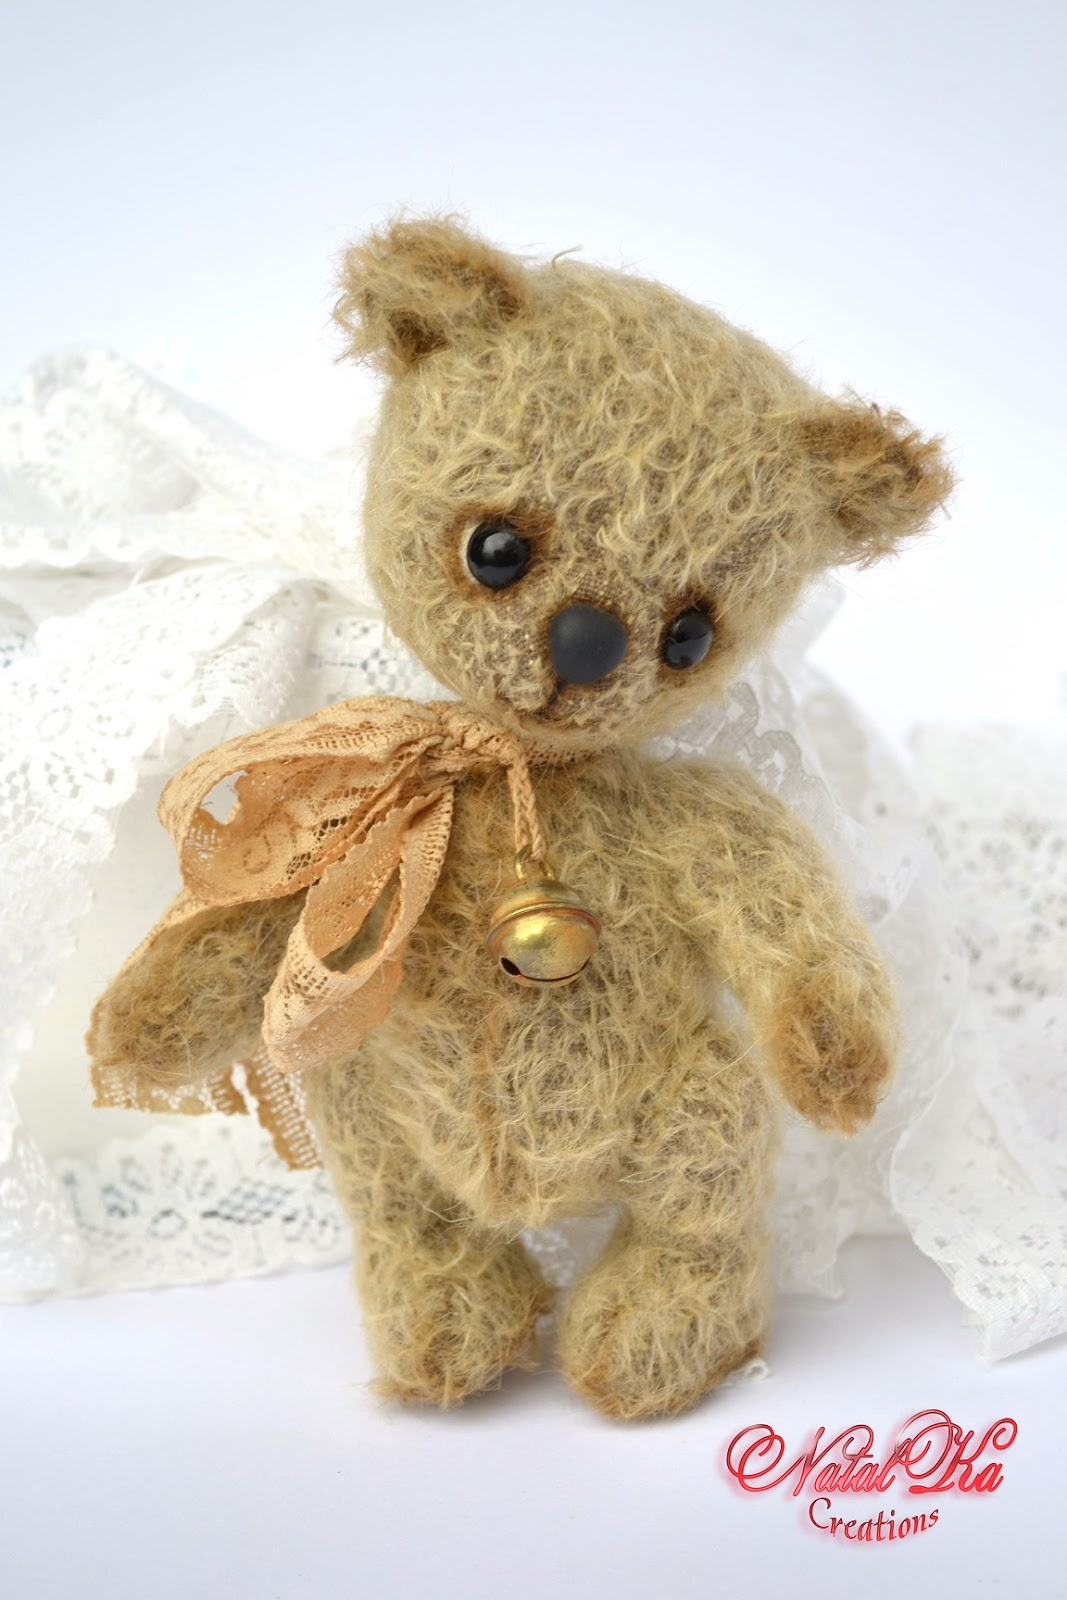 Künstlerbär, Sammlerbär, Teddybär, Unikat, Bär handgemacht aus Mohair von NatalKa Creations. Artist bear, artist teddy bear, bear handmade, teddy bear ooak from mohair by NatalKa Creations